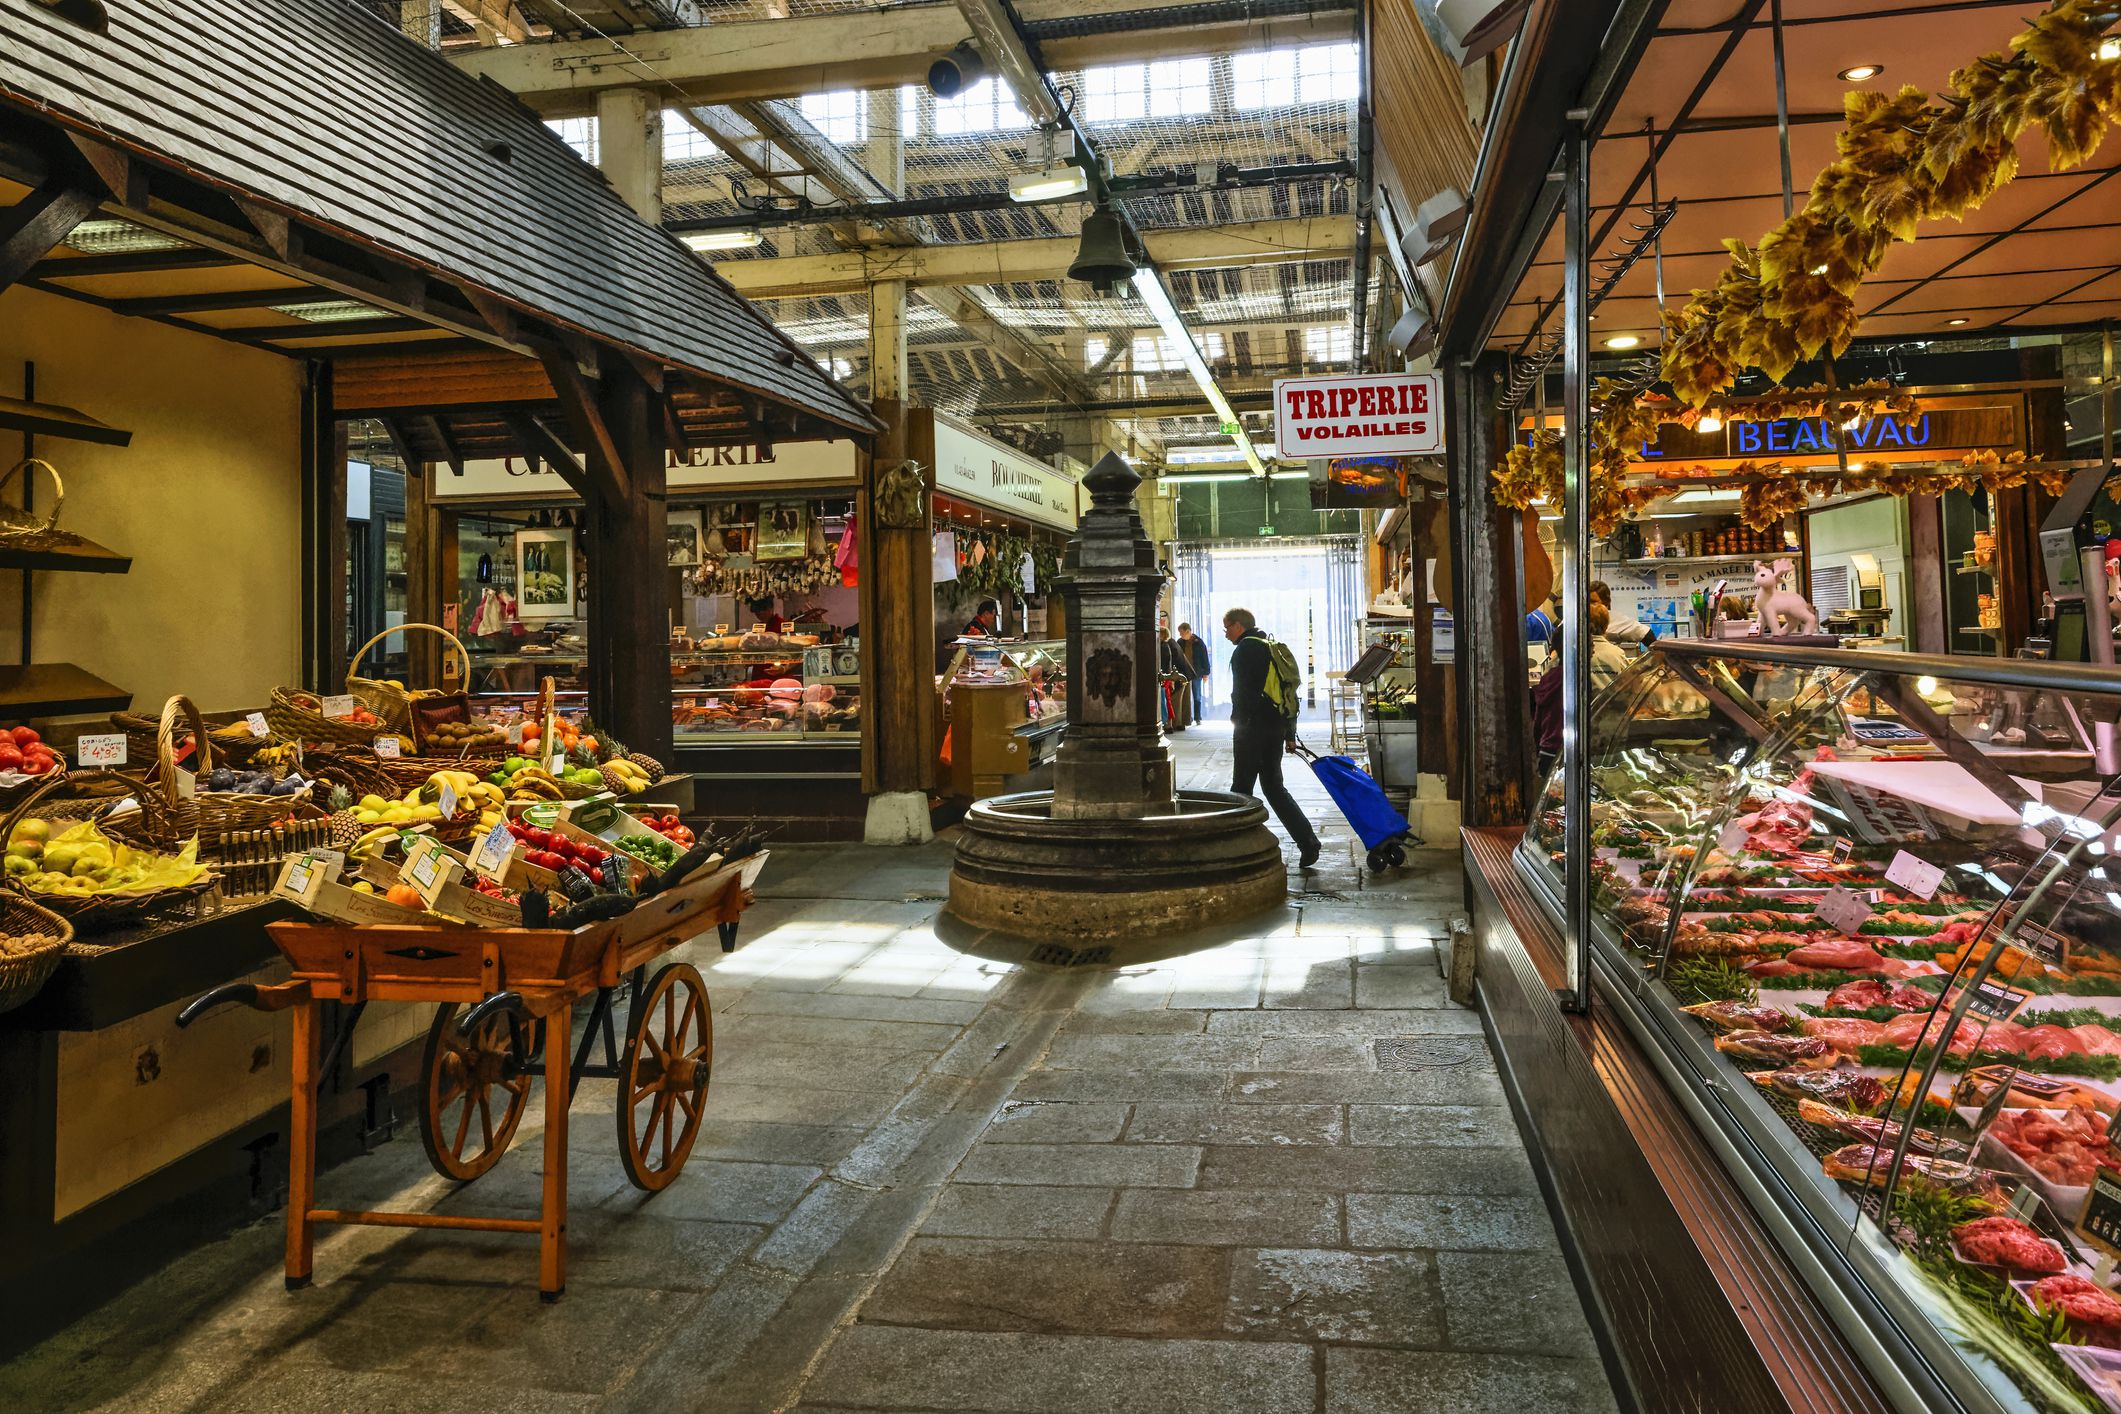 Stalls in the Marché d'Aligre, Paris, France